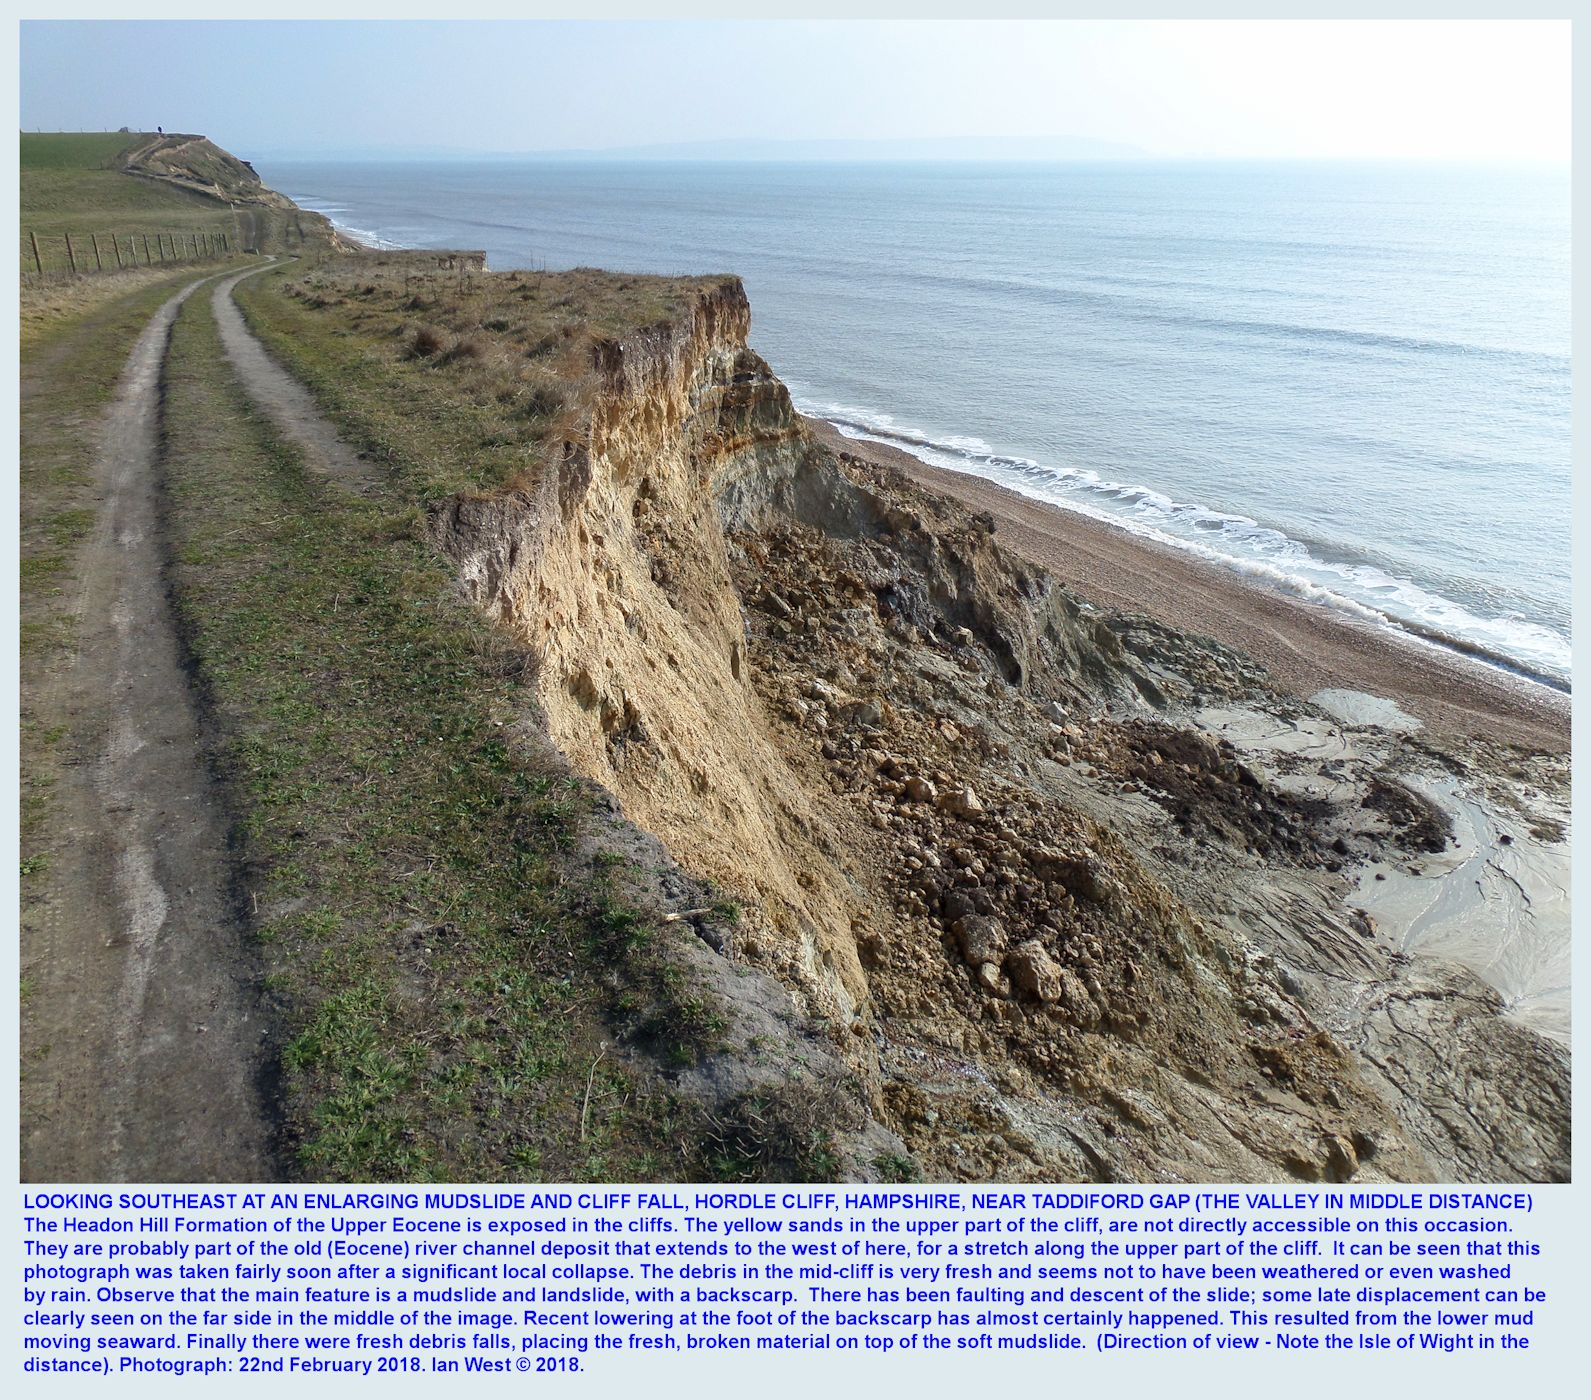 Looking southeast from the cliff top, at a landslide and mudslide, developing just west of Taddiford Gap, Hordle Cliff, Hampshire, and still in progress of extension, 22nd February, 2018